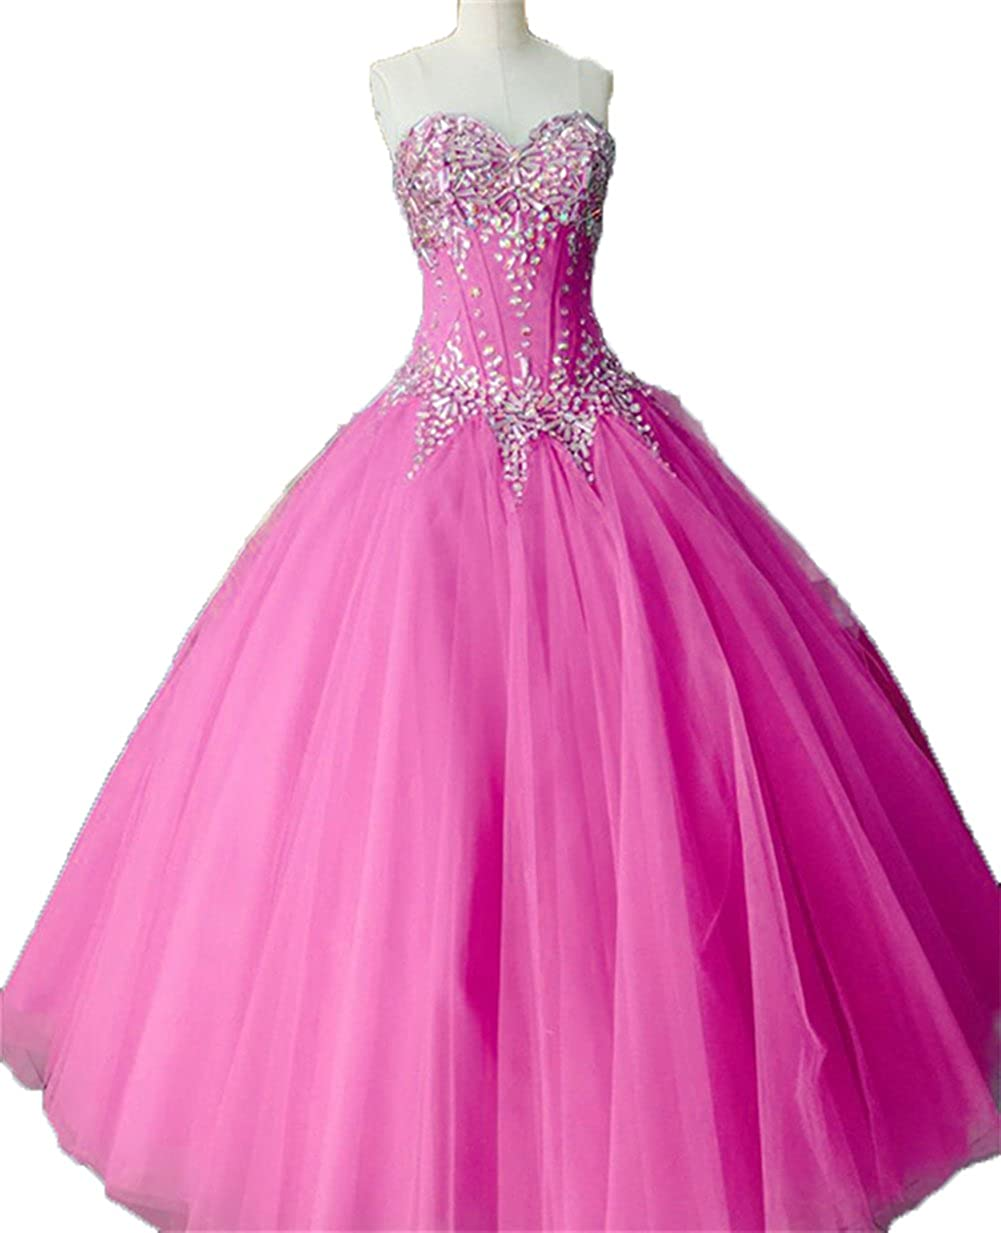 Fuchsia Zhu Li Ya Women's Ball Gown Crystal Tulle Quinceanera Dresses Prom Gown